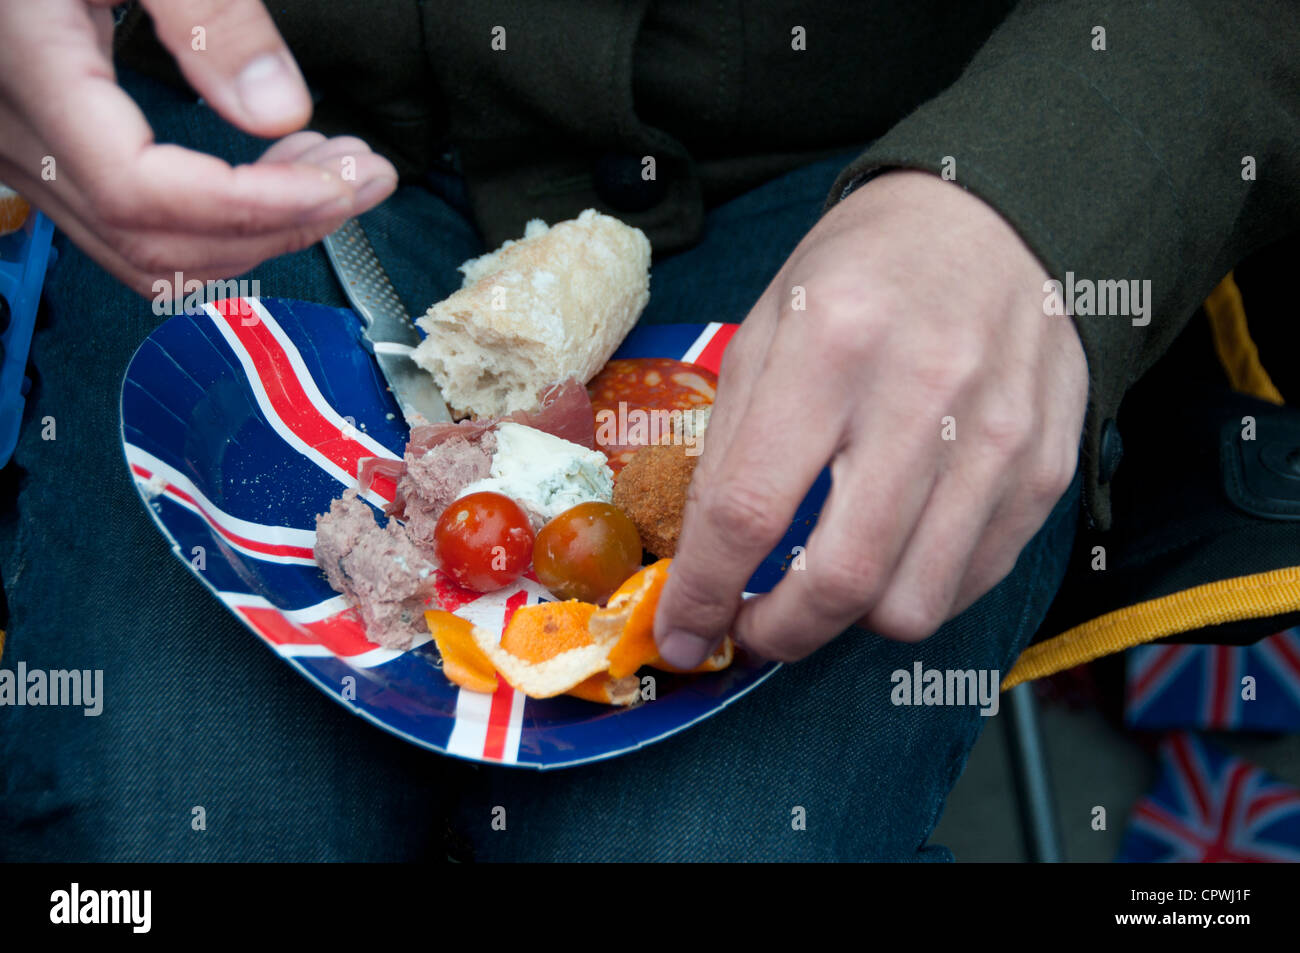 Flotilla on the Thames - man holding Union Jack paper plate with picnic snack & Flotilla on the Thames - man holding Union Jack paper plate with ...